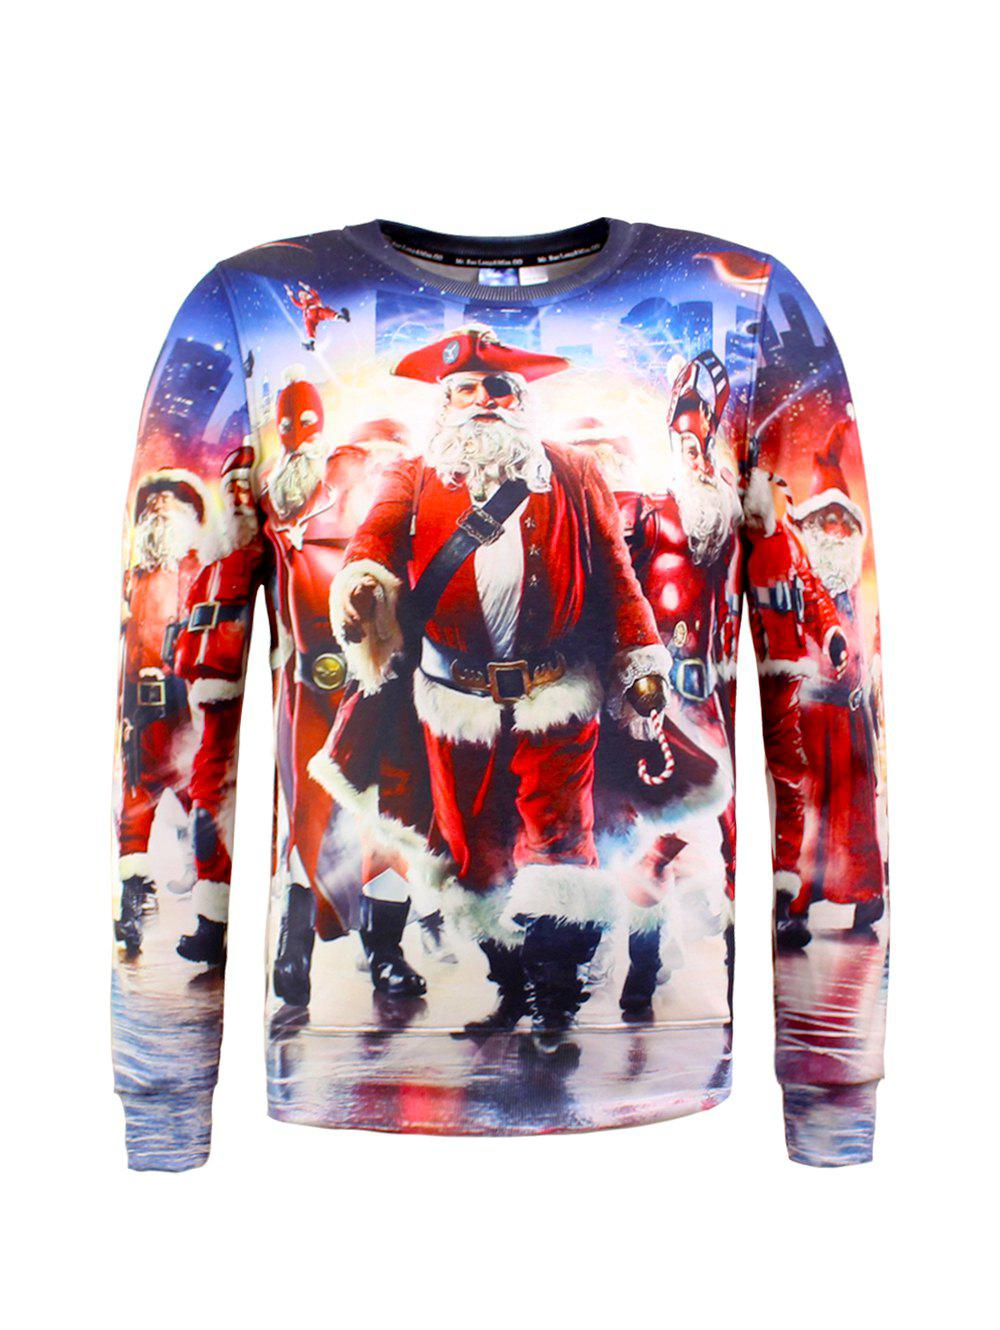 Hot Santa Claus 3D Printed Christmas Sweatshirt